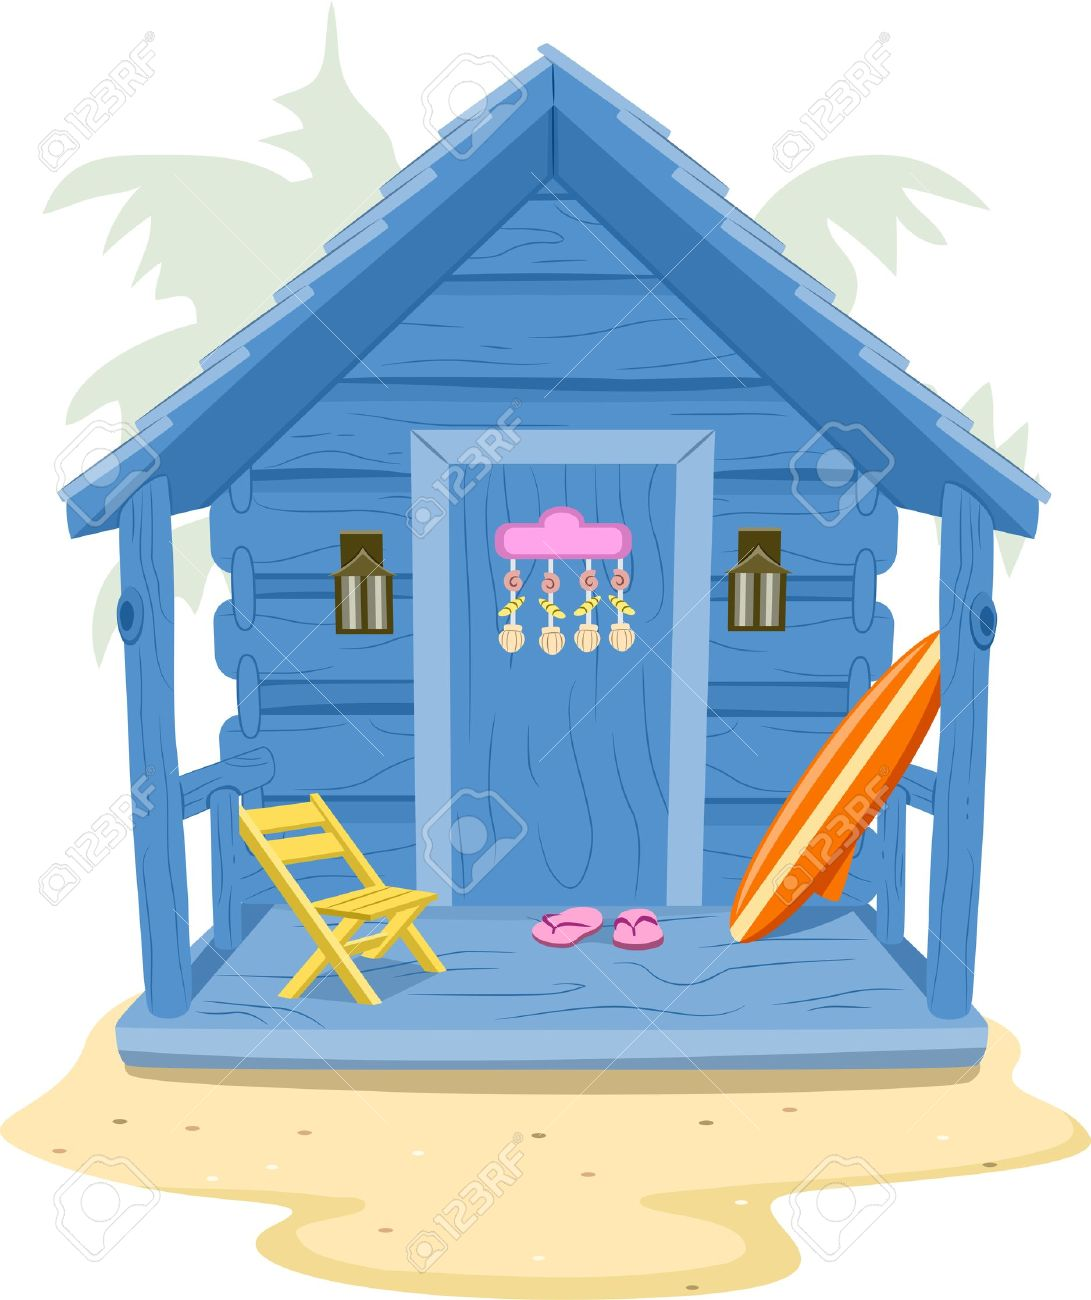 Background Illustration Featuring A Beach Cabin Royalty Free.